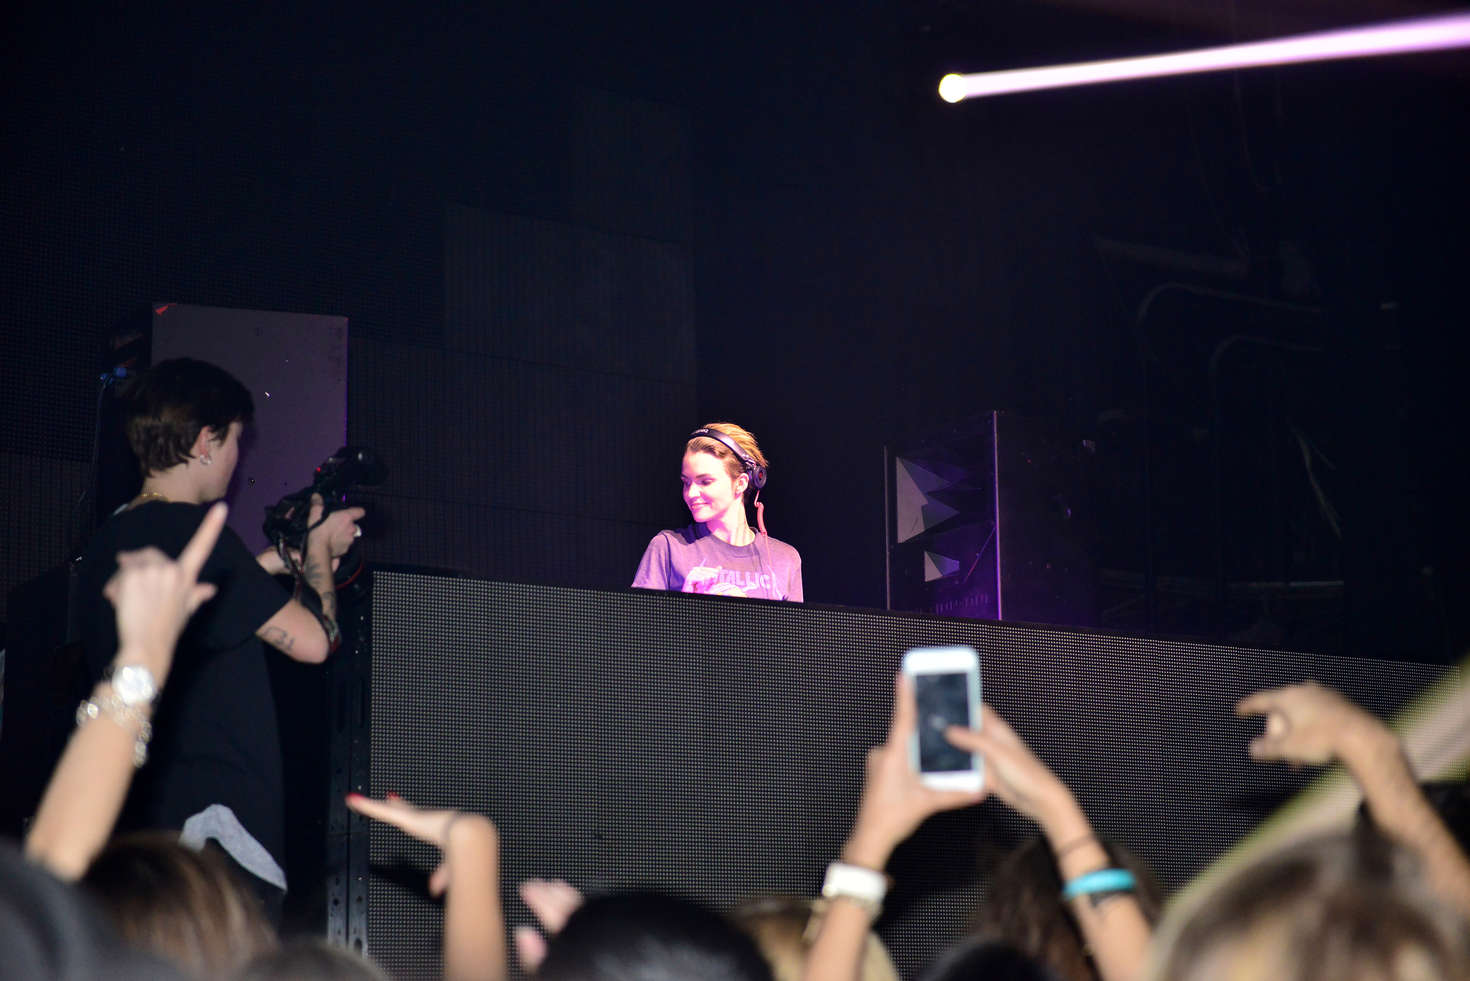 Ruby Rose Performs at the Grand Opening Of ICON MIAMI in Miami